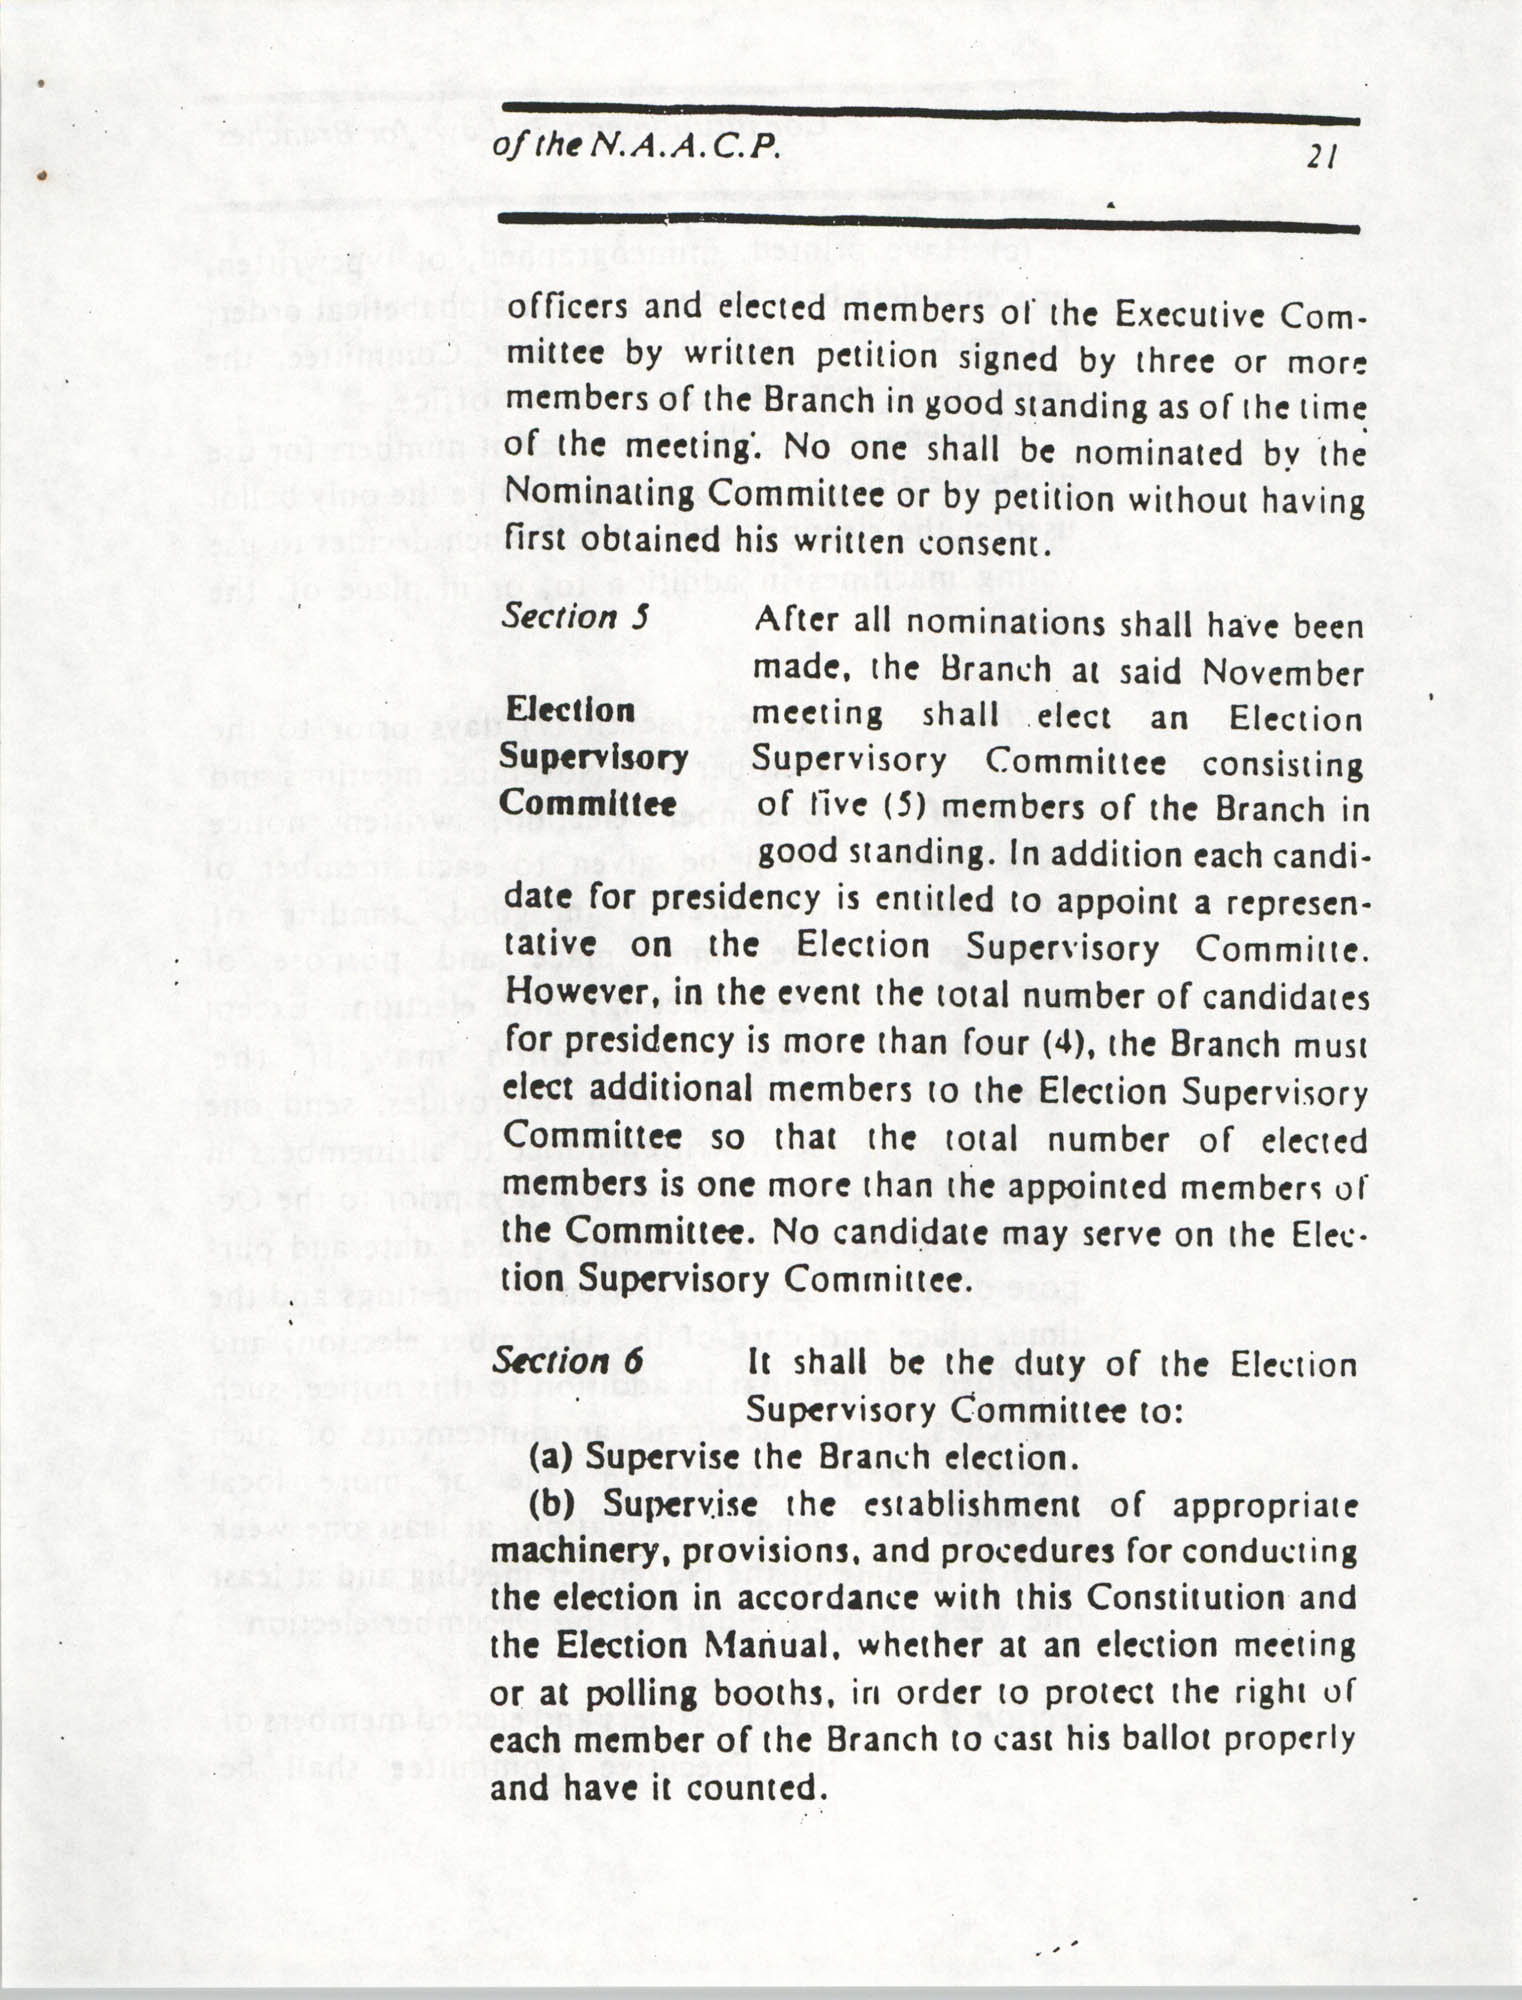 Constitution and By-Laws for Branches of the NAACP, March 1992, Page 21